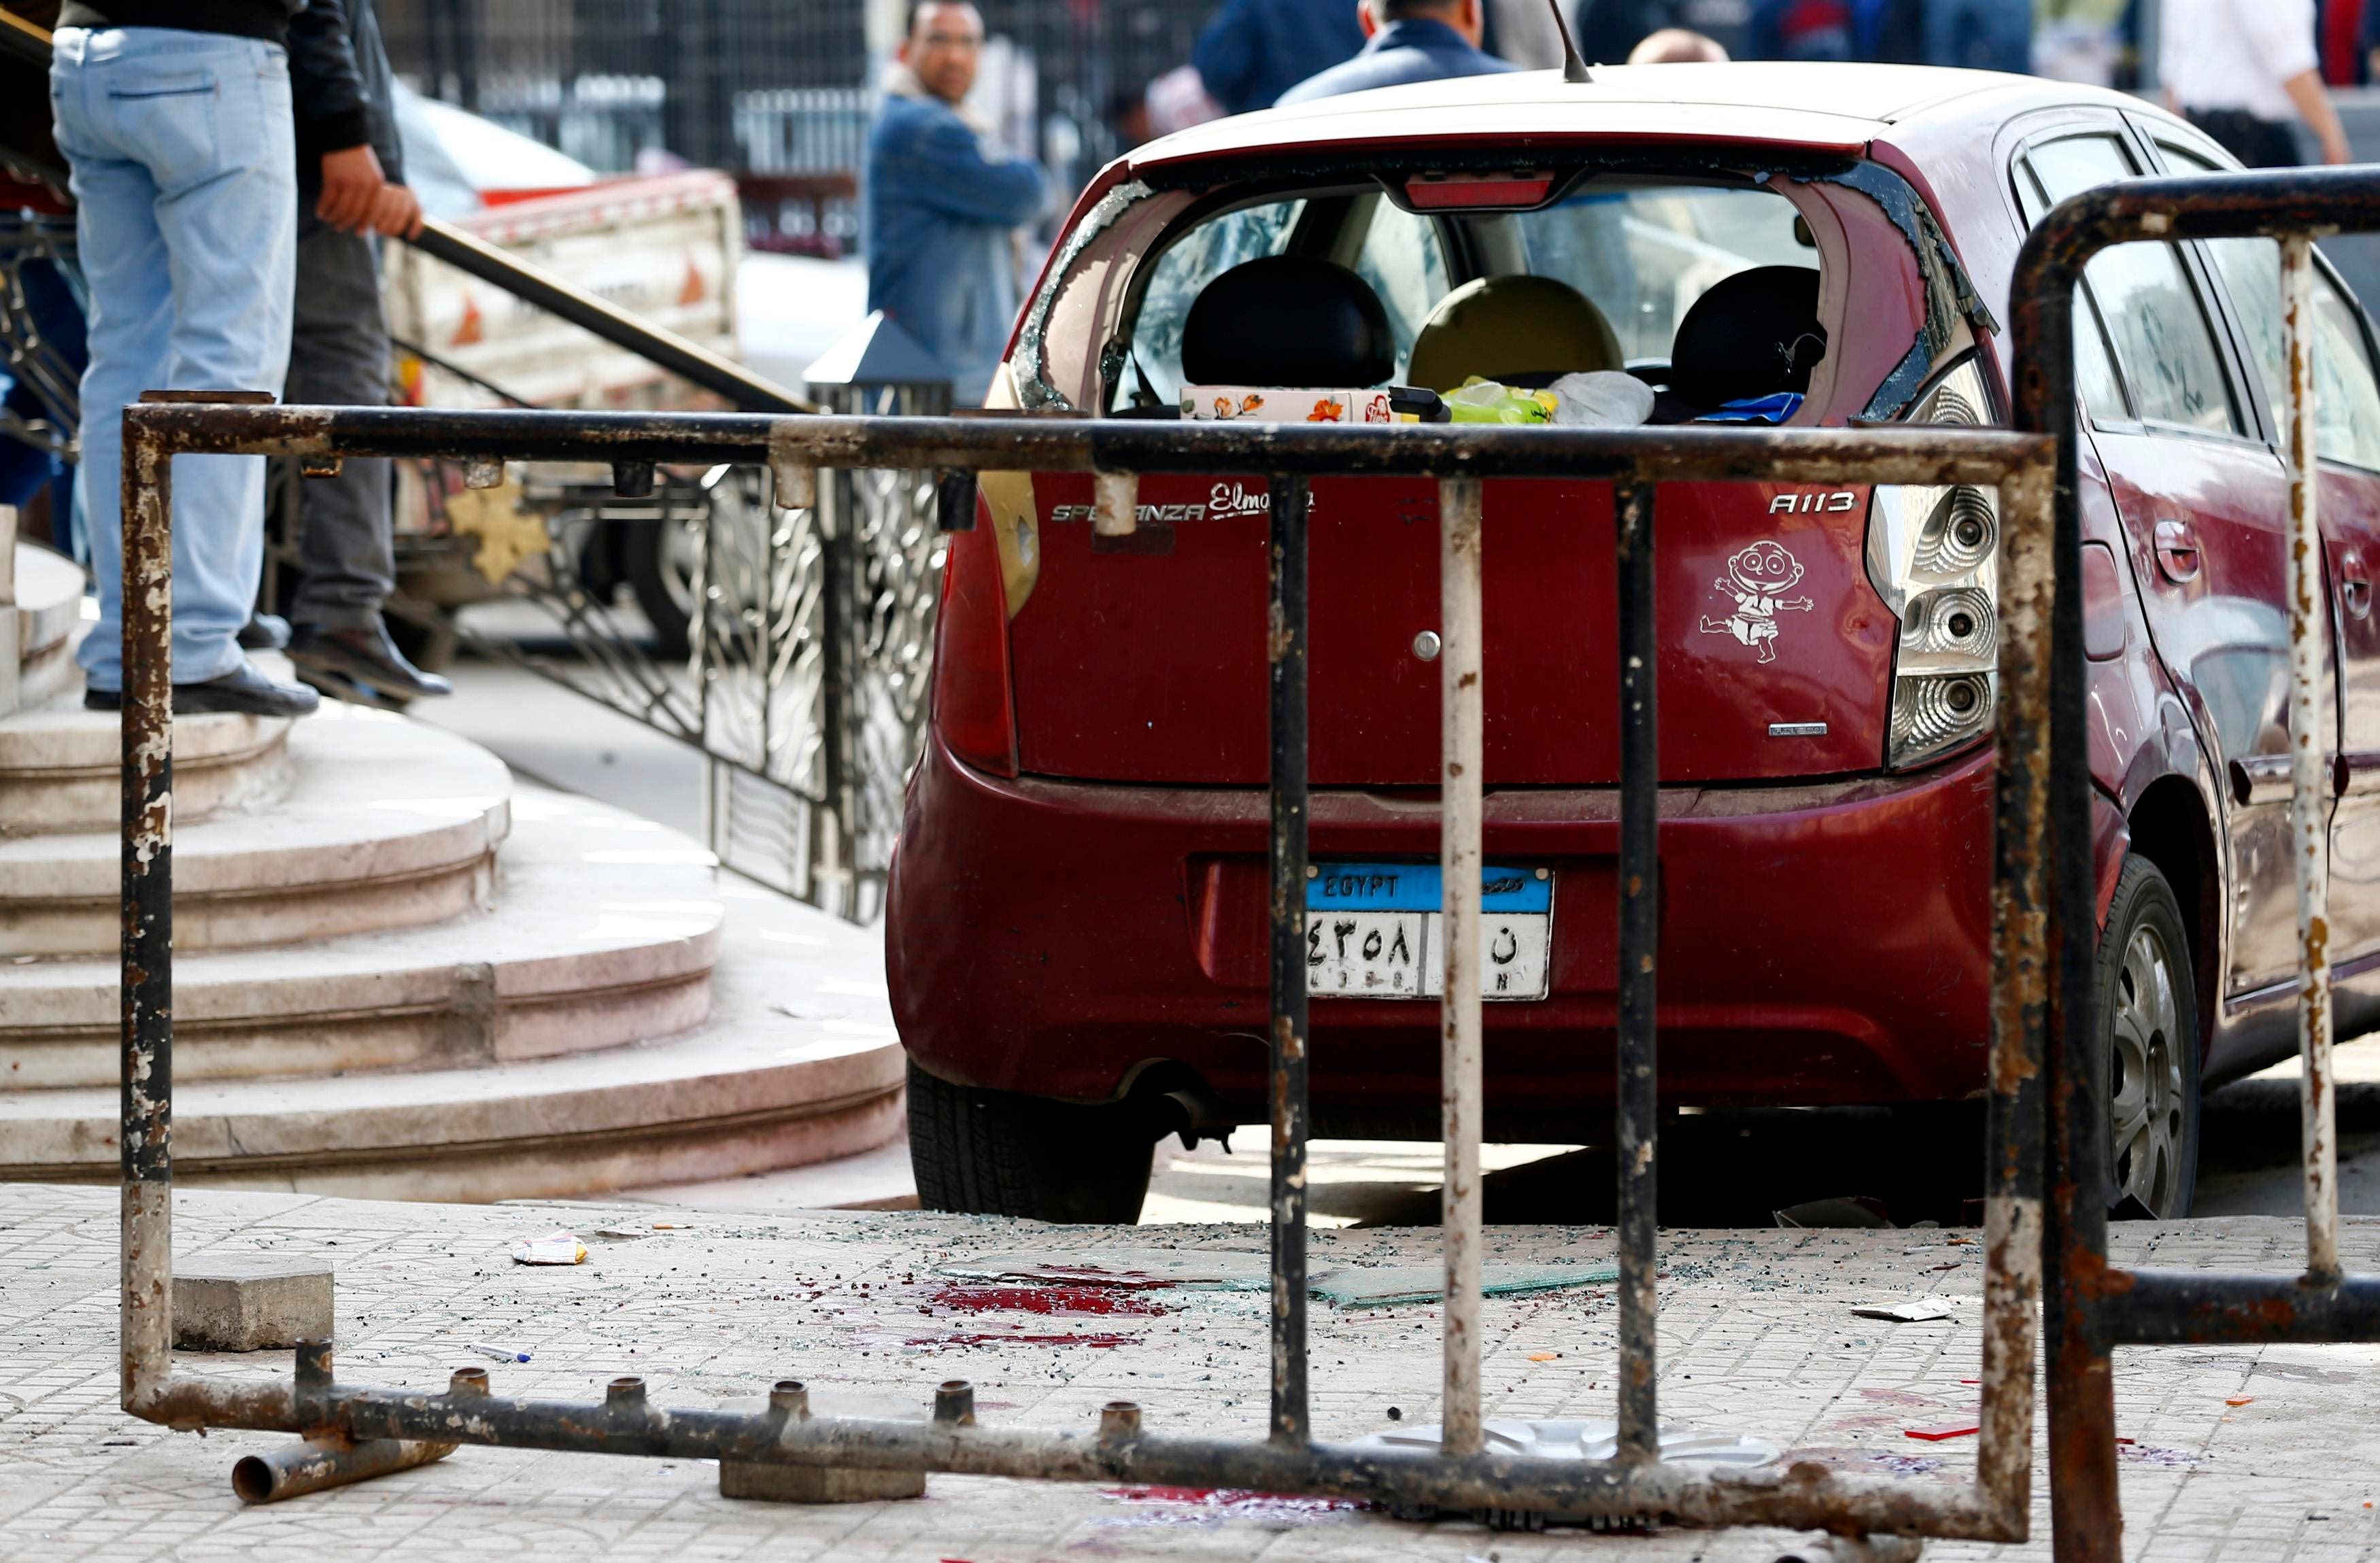 Blood stains are seen on the ground as security officials inspect the scene of a car bomb blast in front of The High Court in downtown Cairo, March 2, 2015. (Reuters)